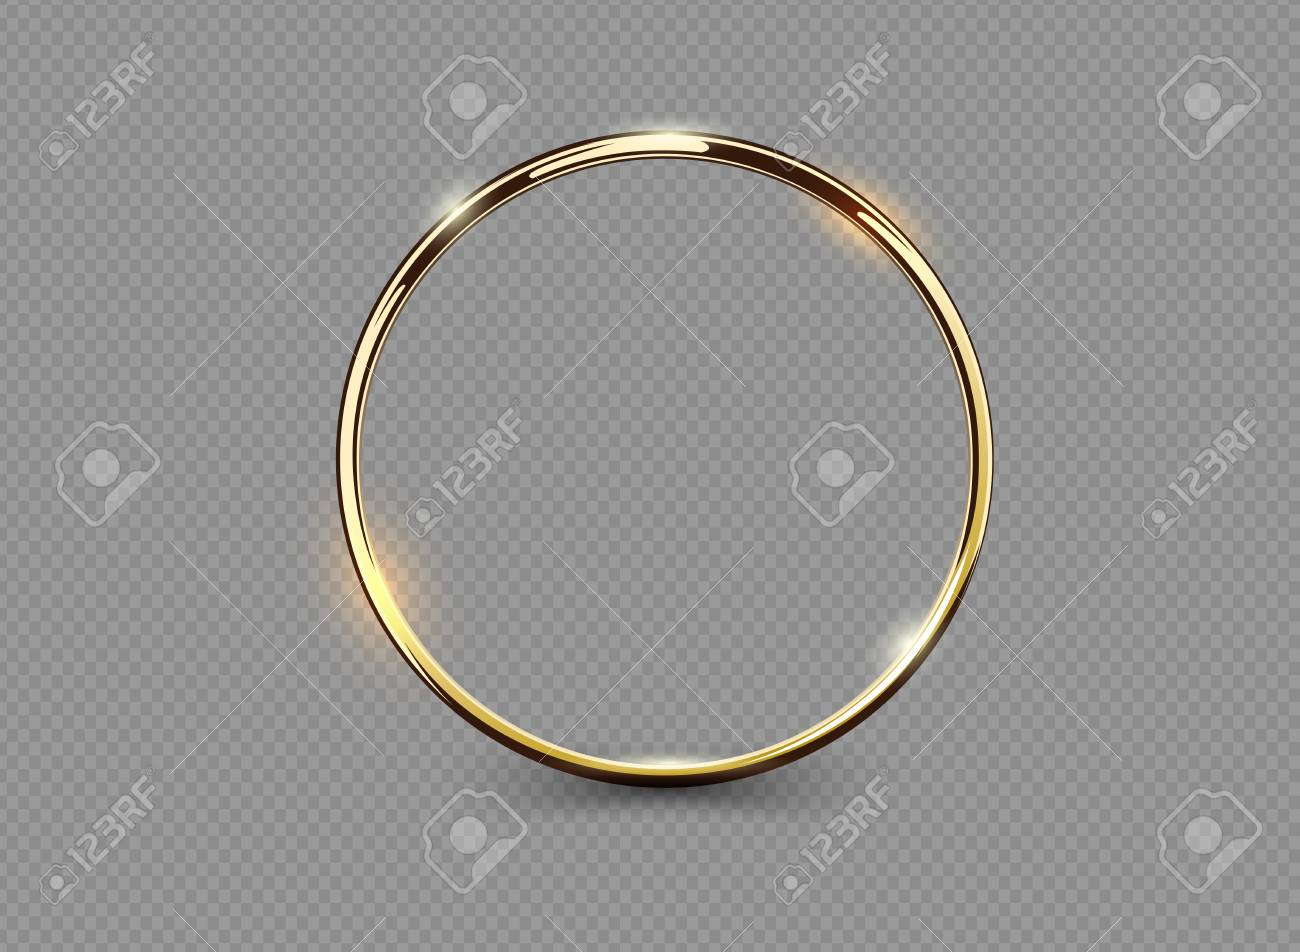 Abstract luxury golden ring on transparent background. Vector light circles spotlight light effect. Gold color round frame - 93865578